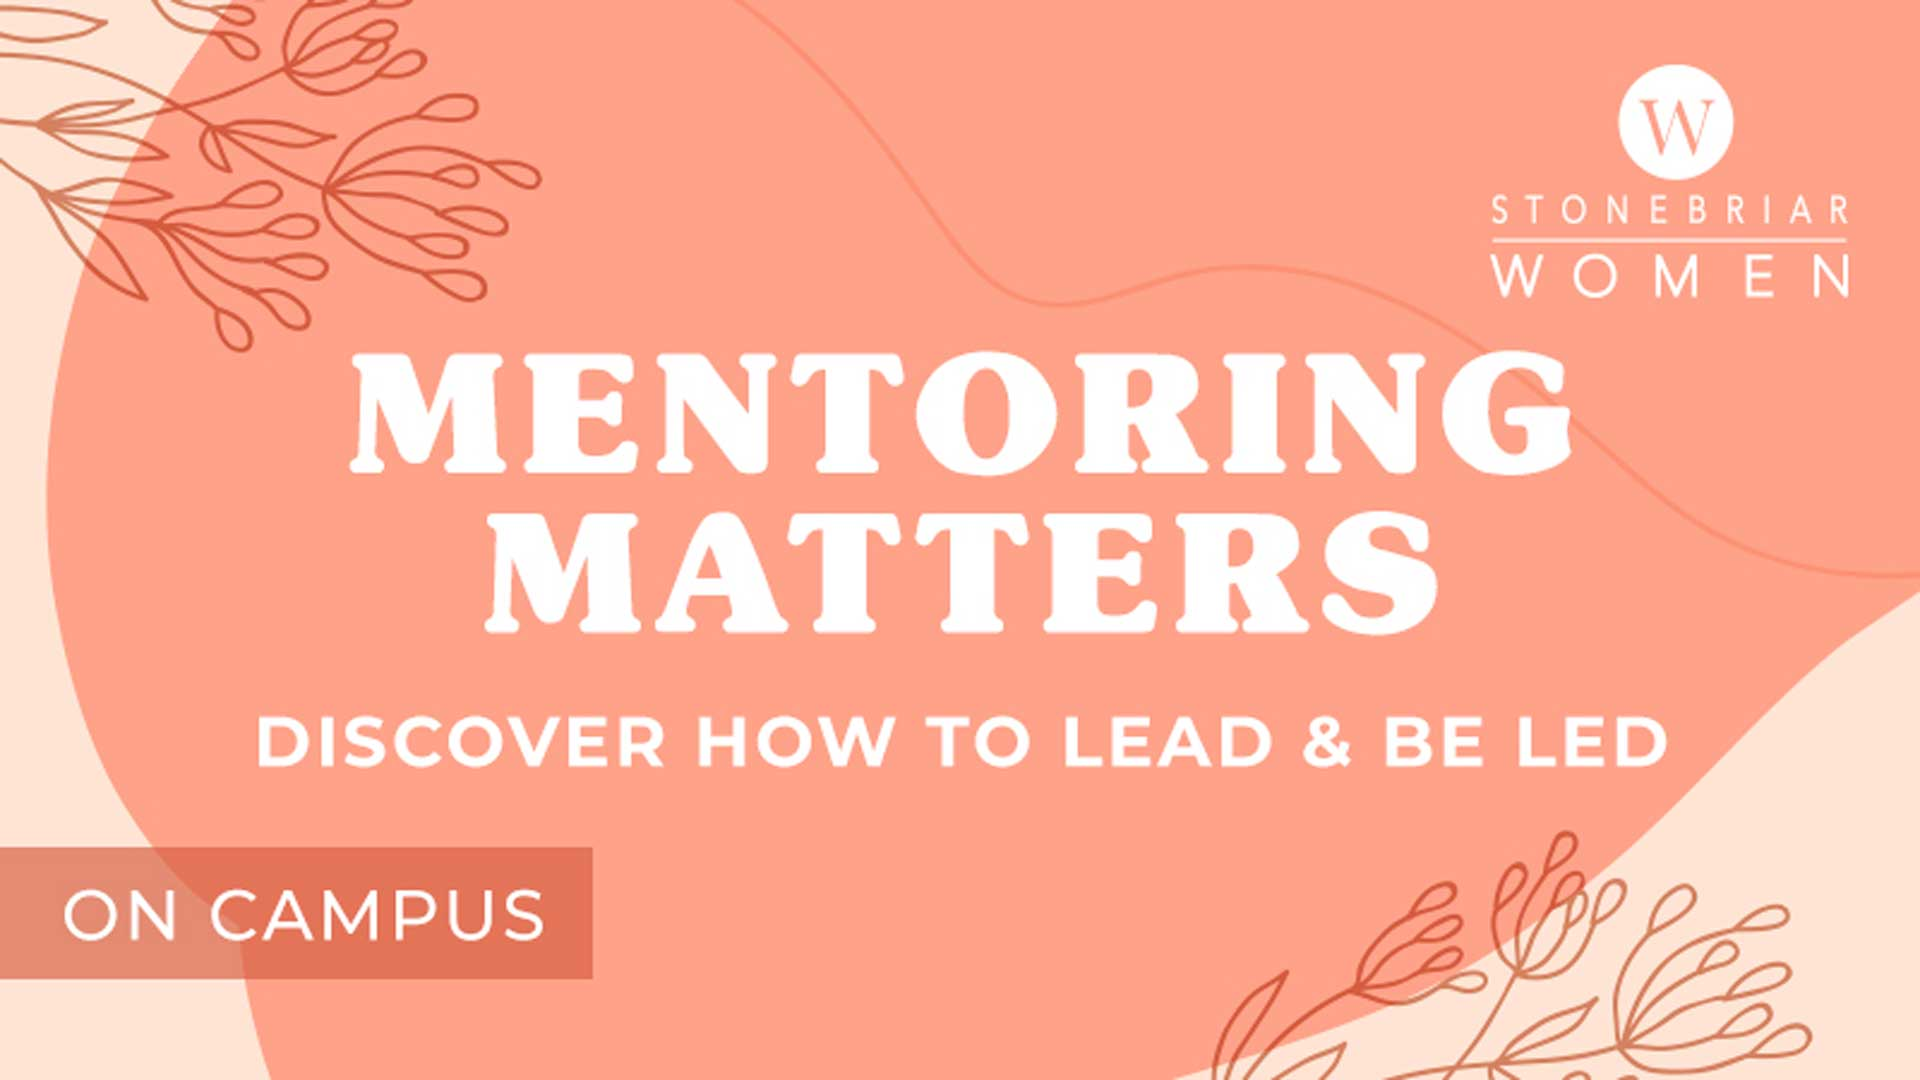 Mentoring Matters Women's Connection Group